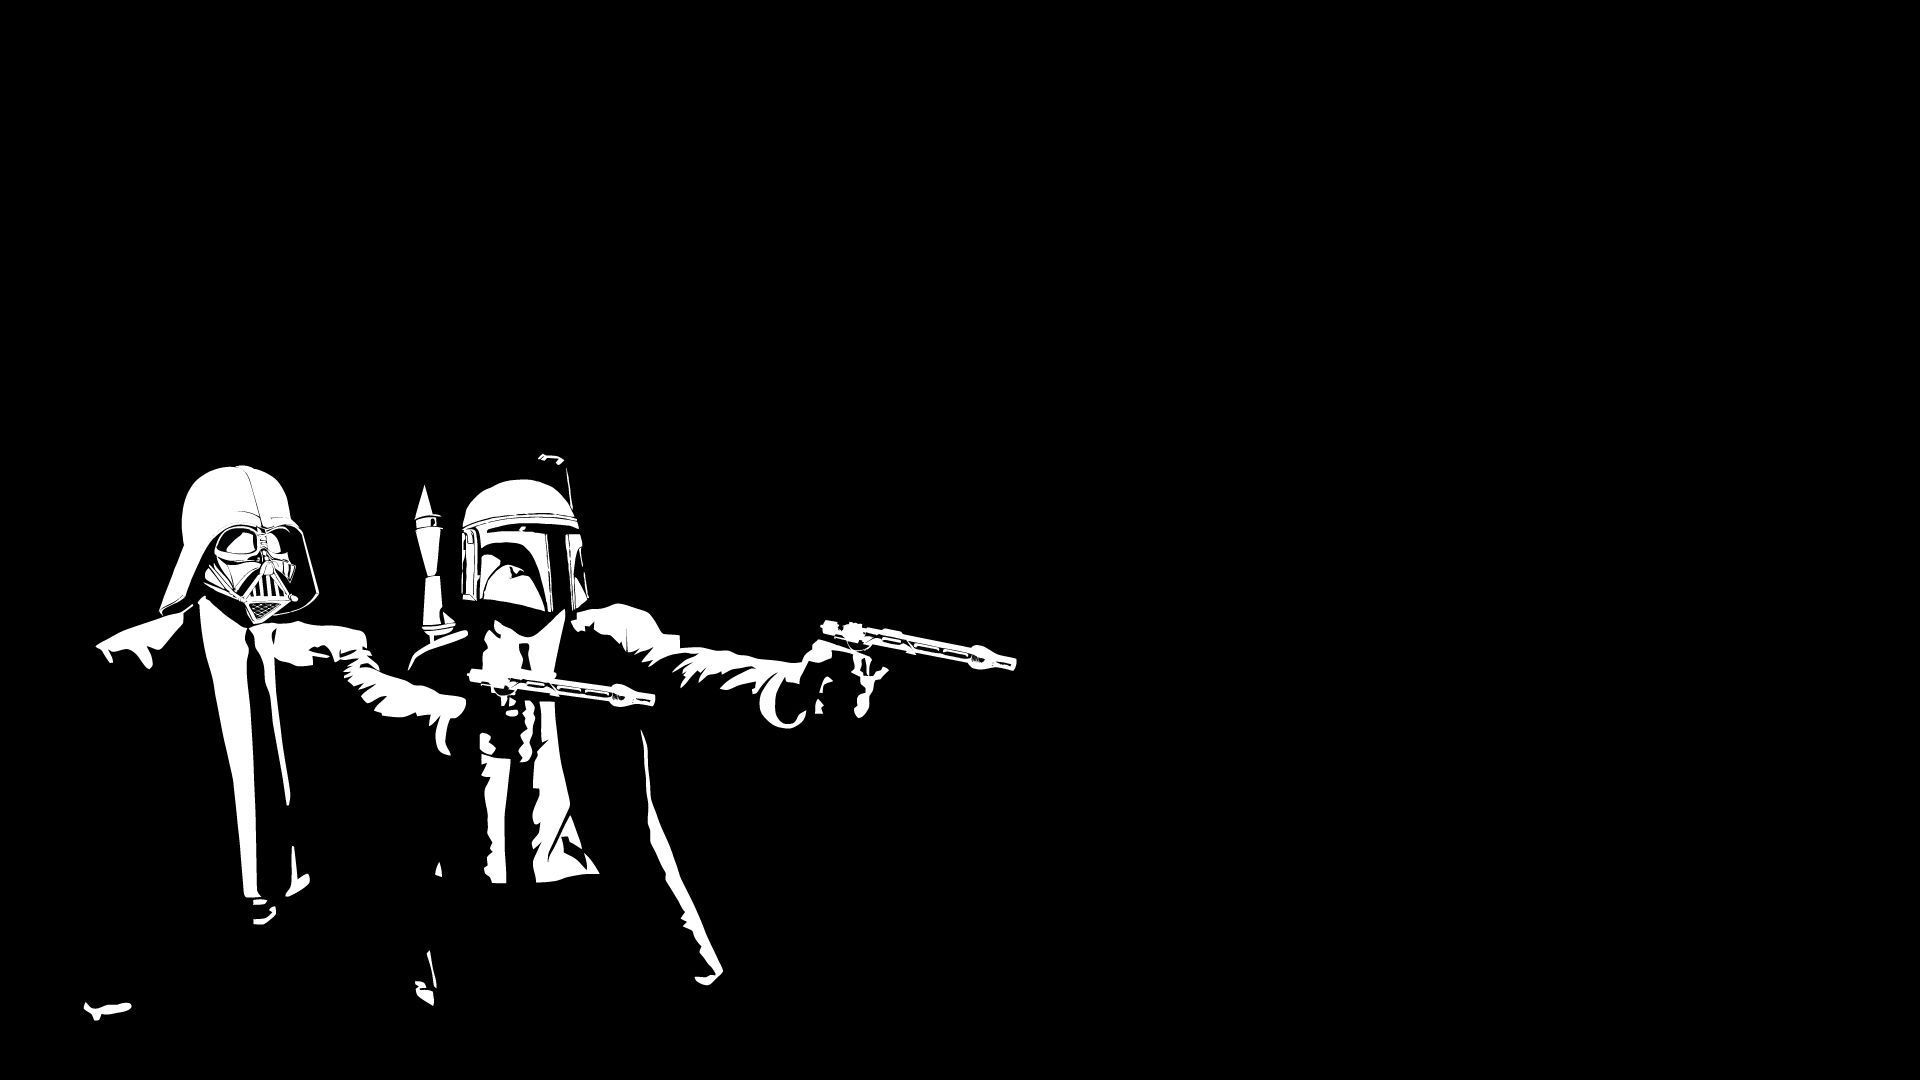 Crossover wallpaper - You Can View Download And Comment On Star Wars Pulp Fiction Crossover Free Hd Wallpapers